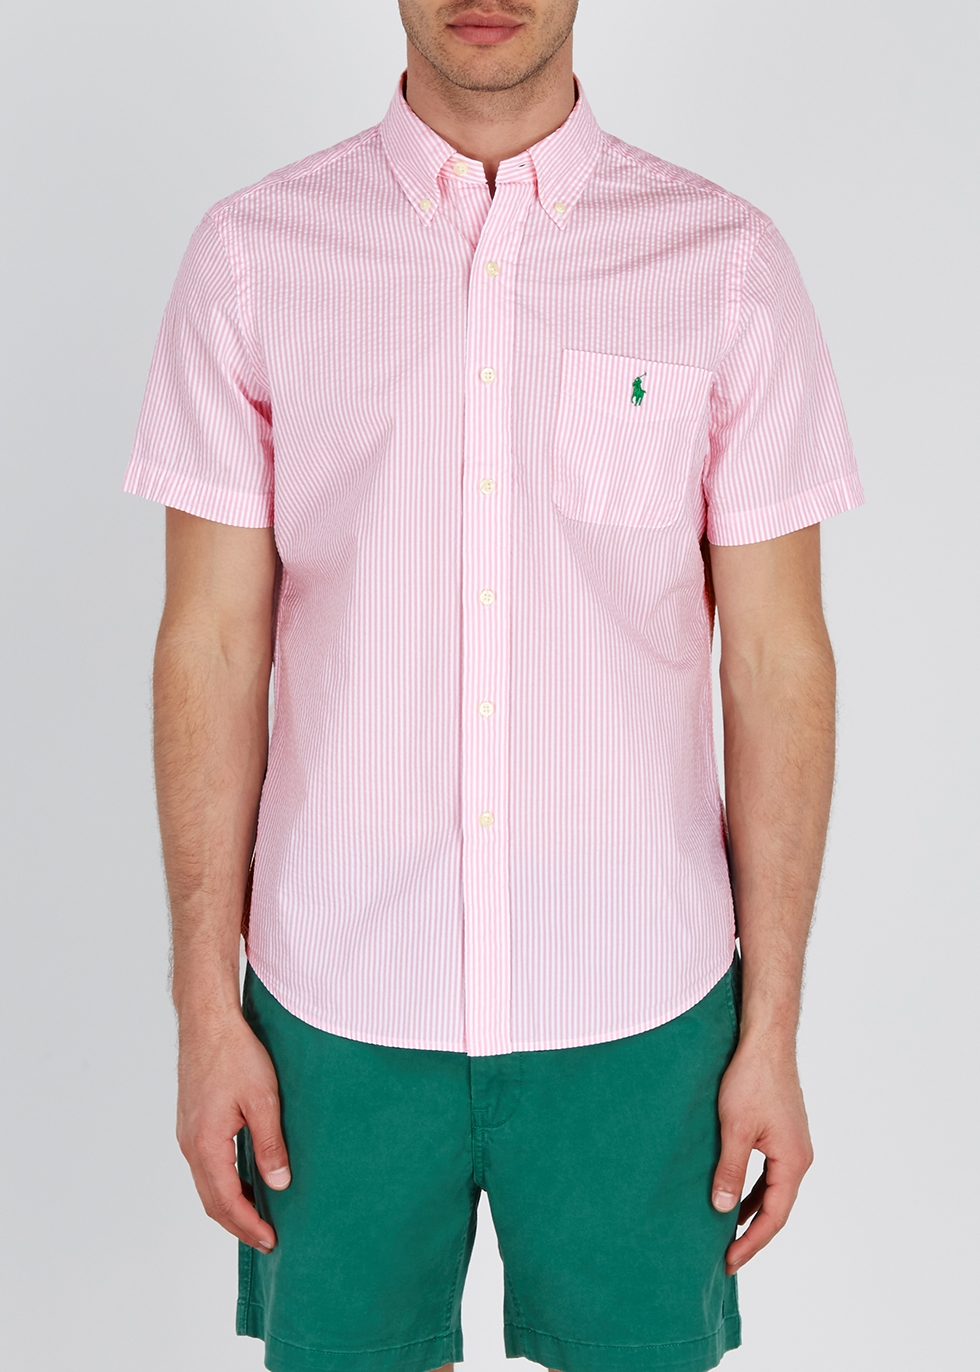 Pink striped seersucker shirt - Polo Ralph Lauren